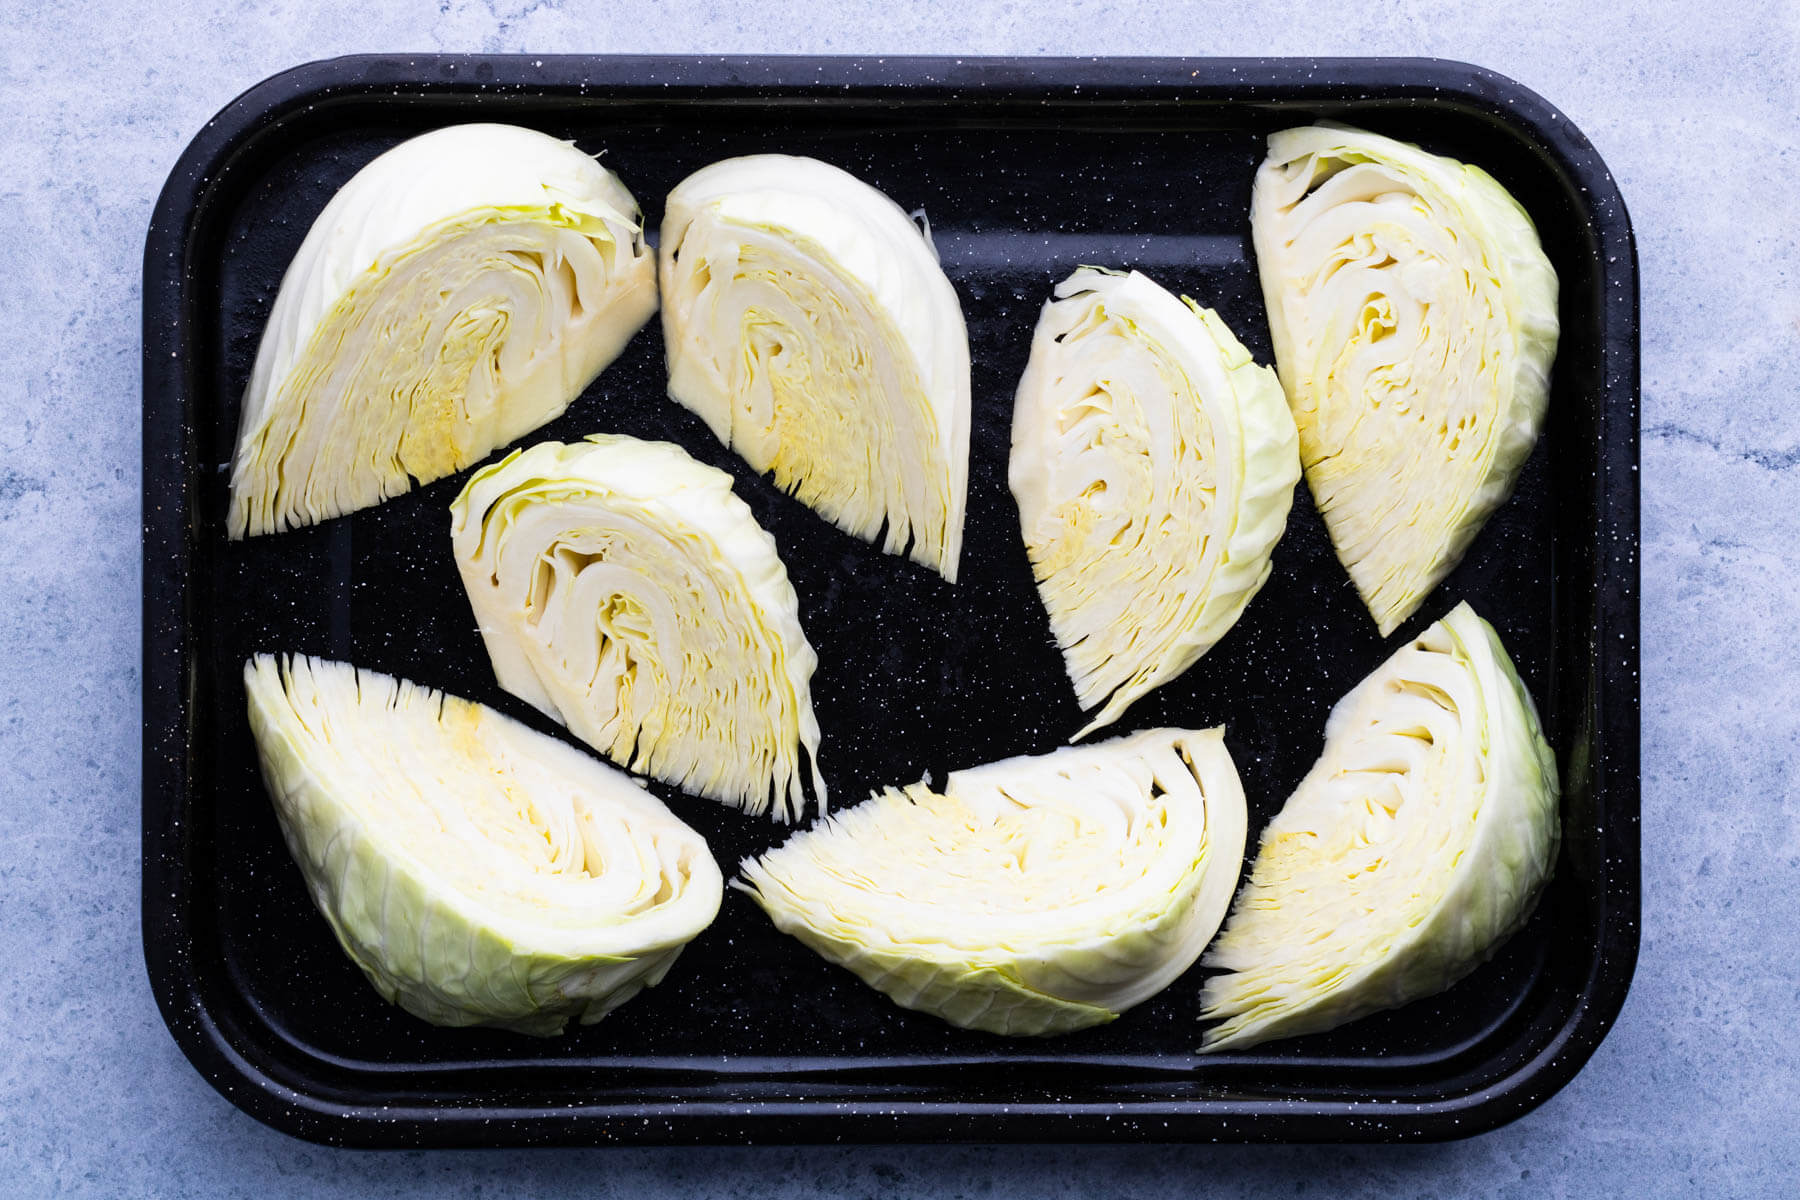 Wedges of raw cabbage in a dark roasting pan.